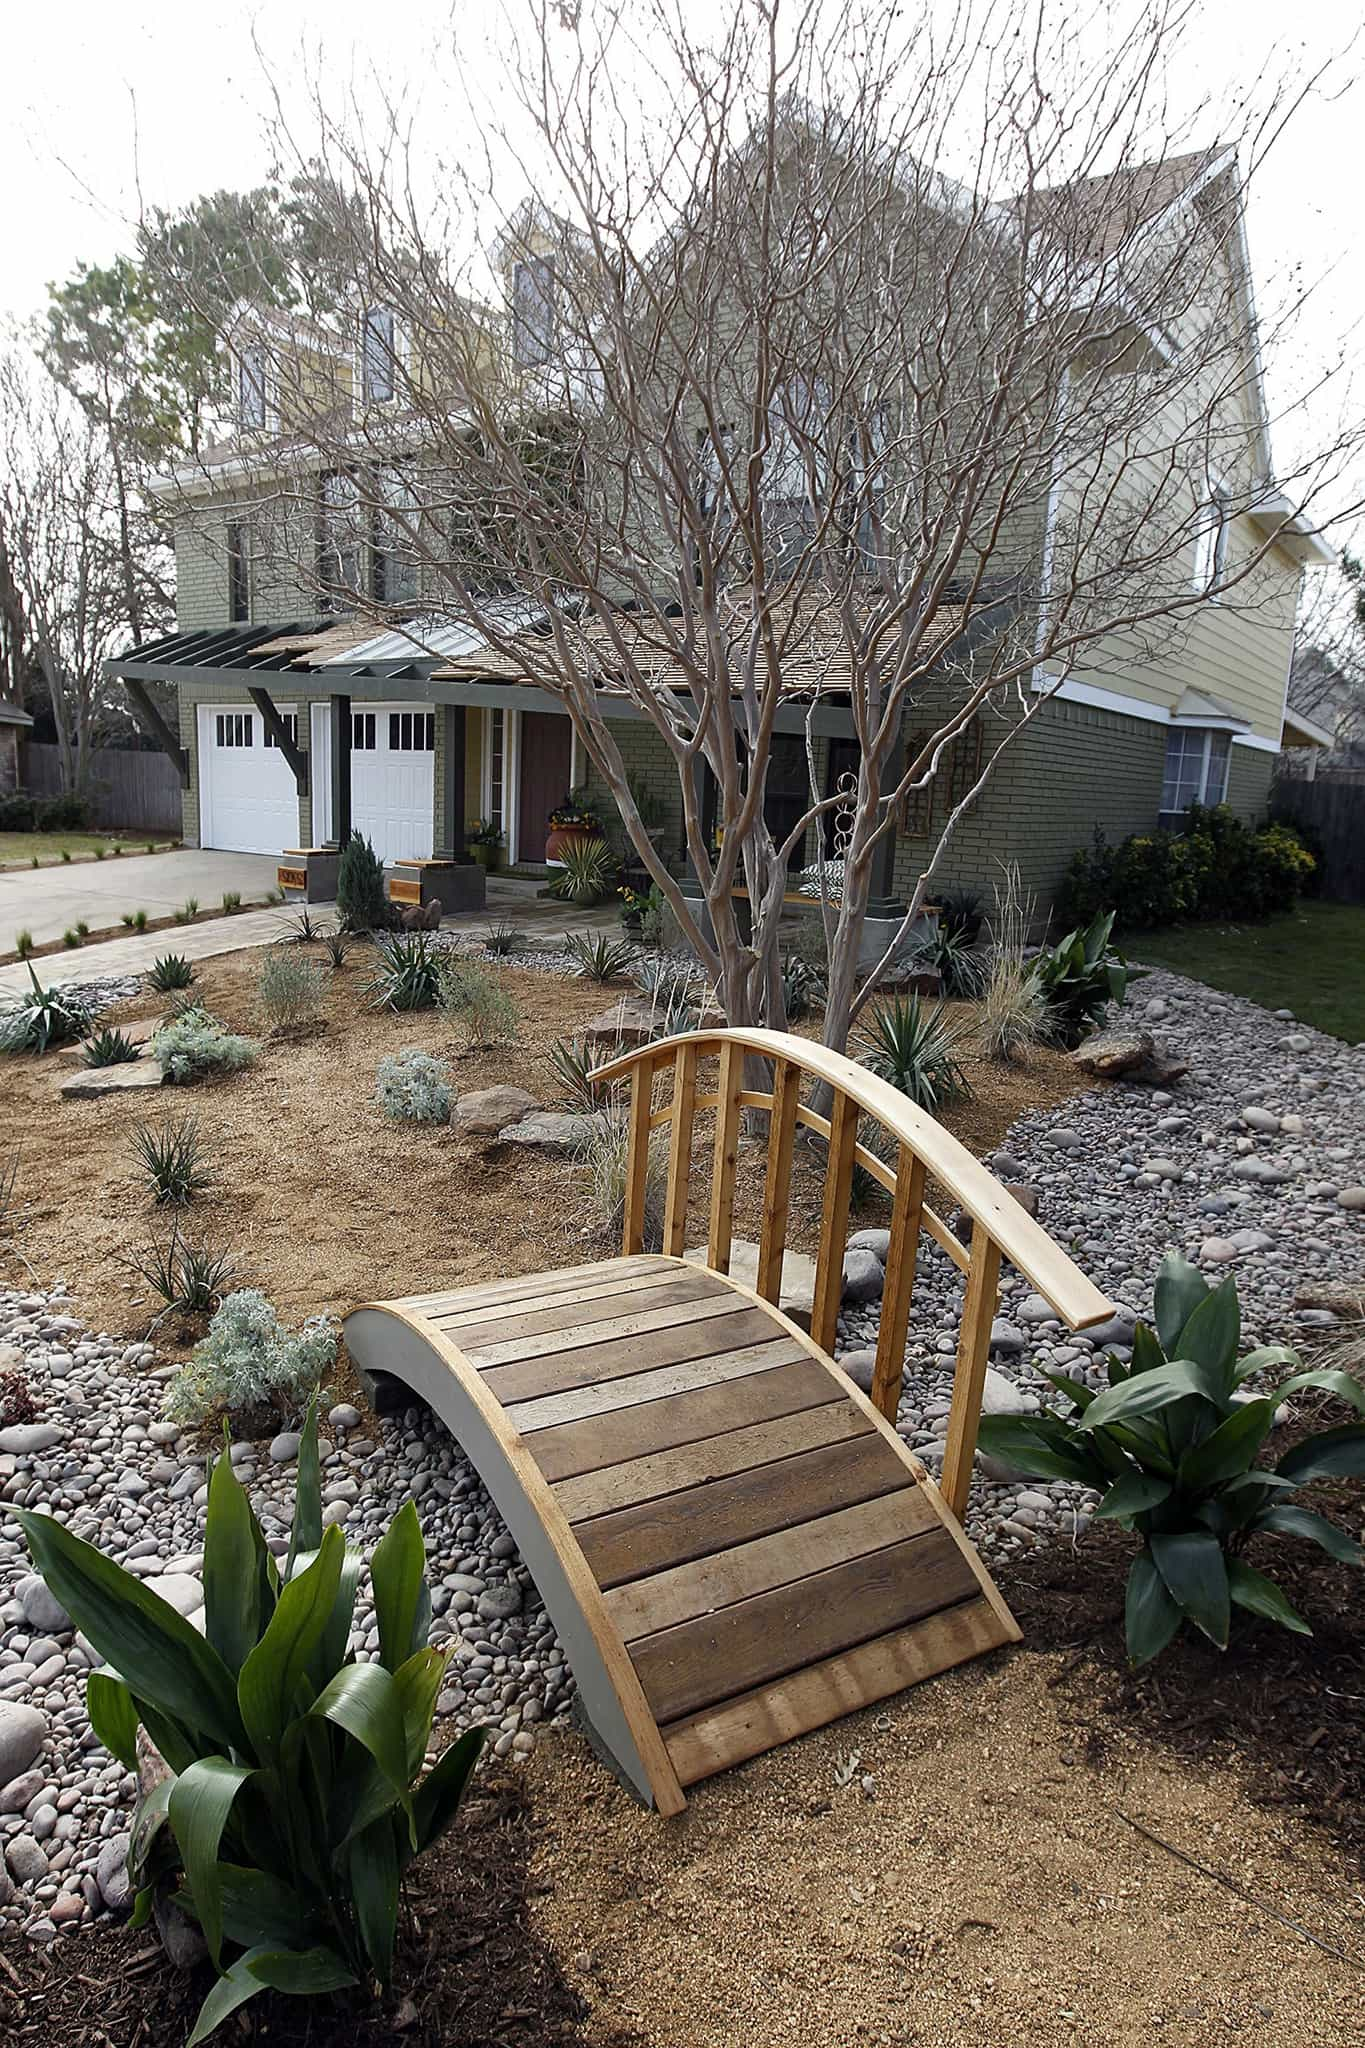 Featured Image of Cape Cod Style Home With Curved Wooden Bridge Over Xeriscaped Yard